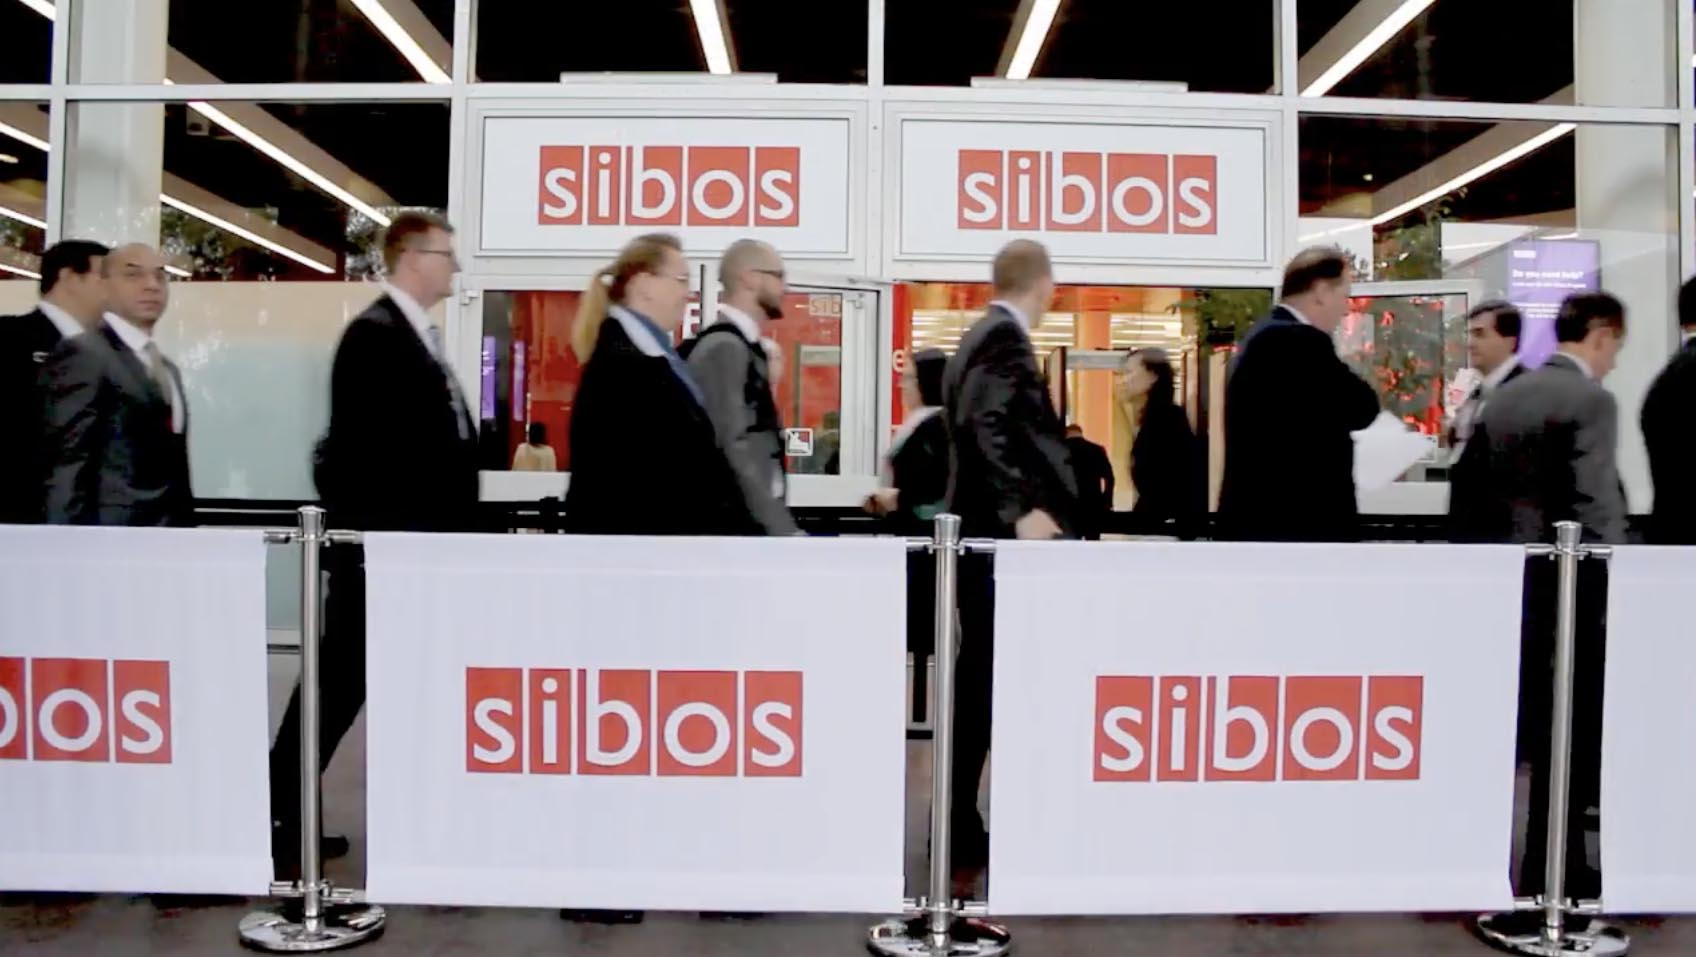 Financial IT speaks with Pelican at Sibos 2016